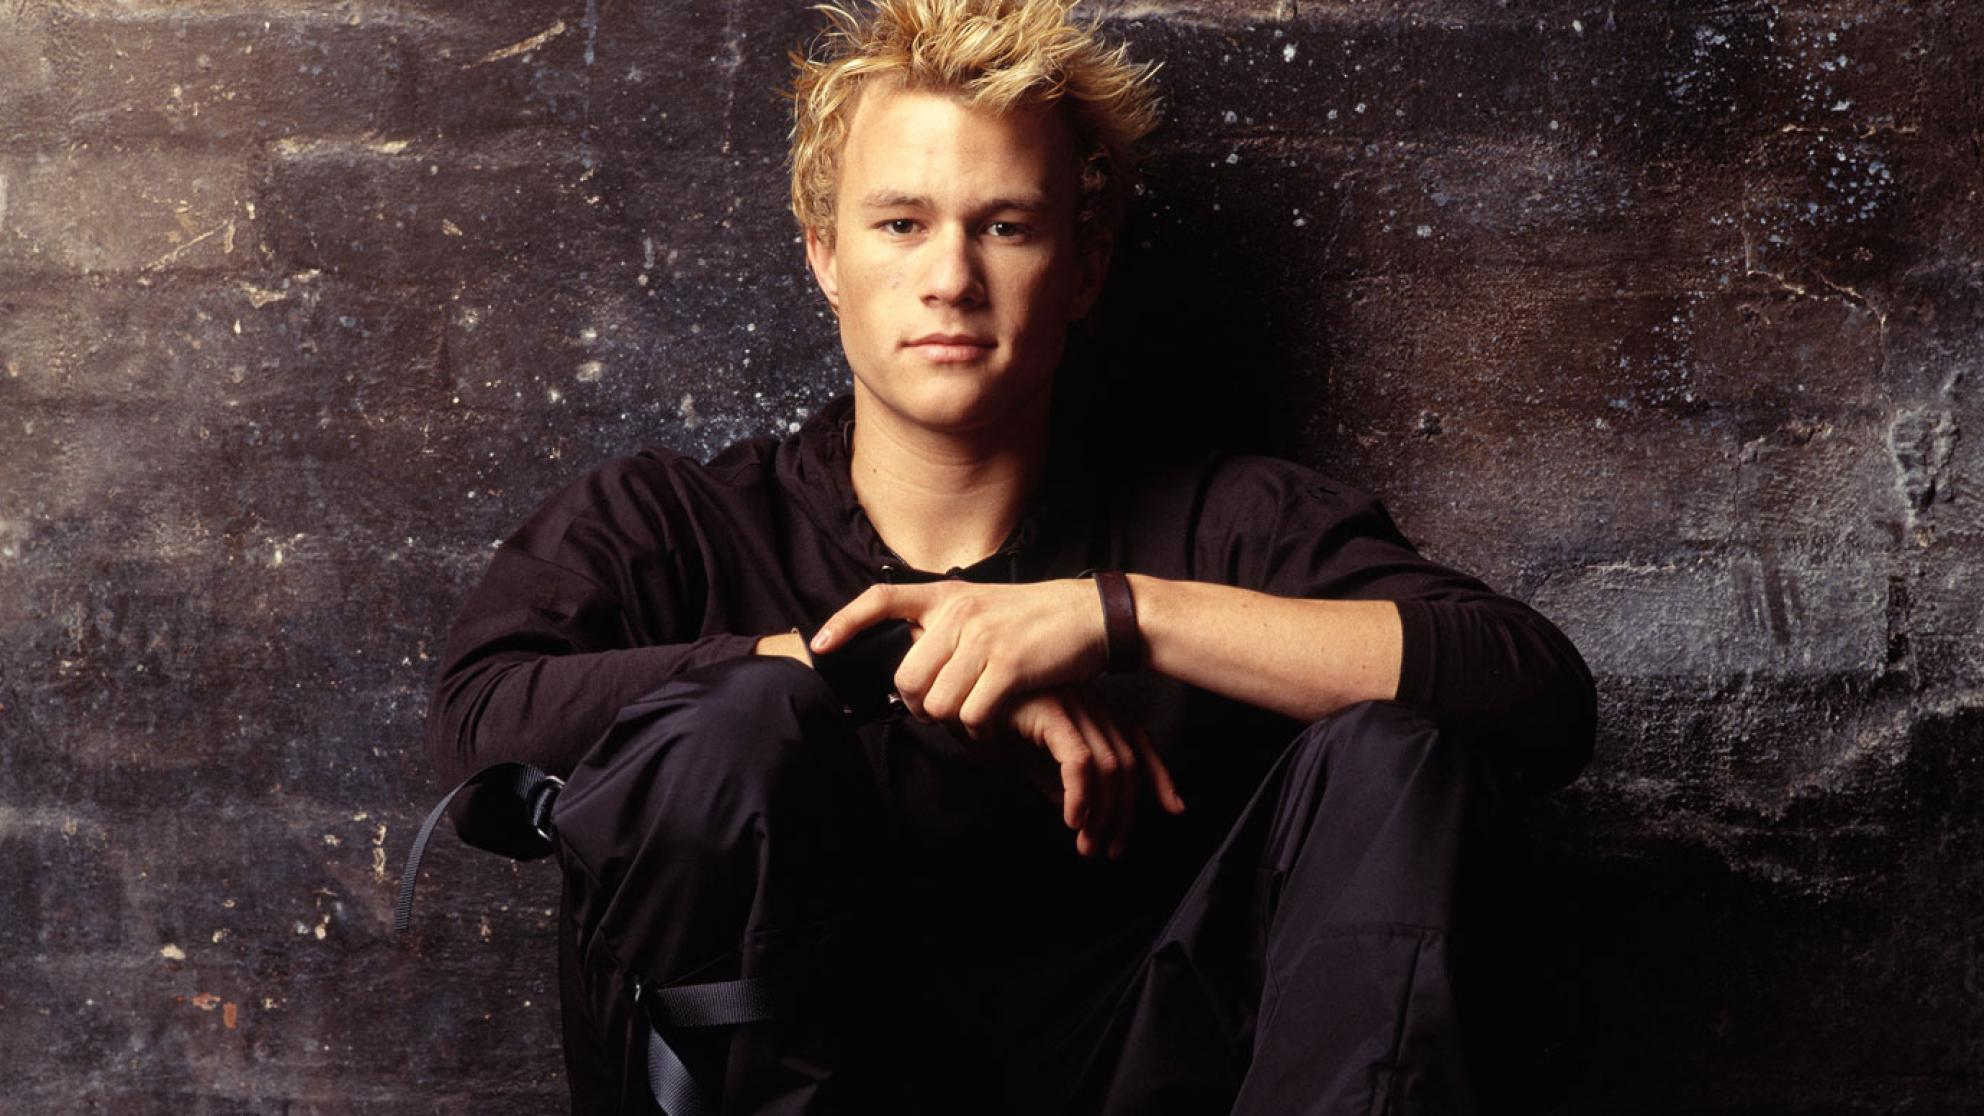 Heath Ledger is looking directly at the camera in a quietly confident pose. He is wearing black and up against a wall.